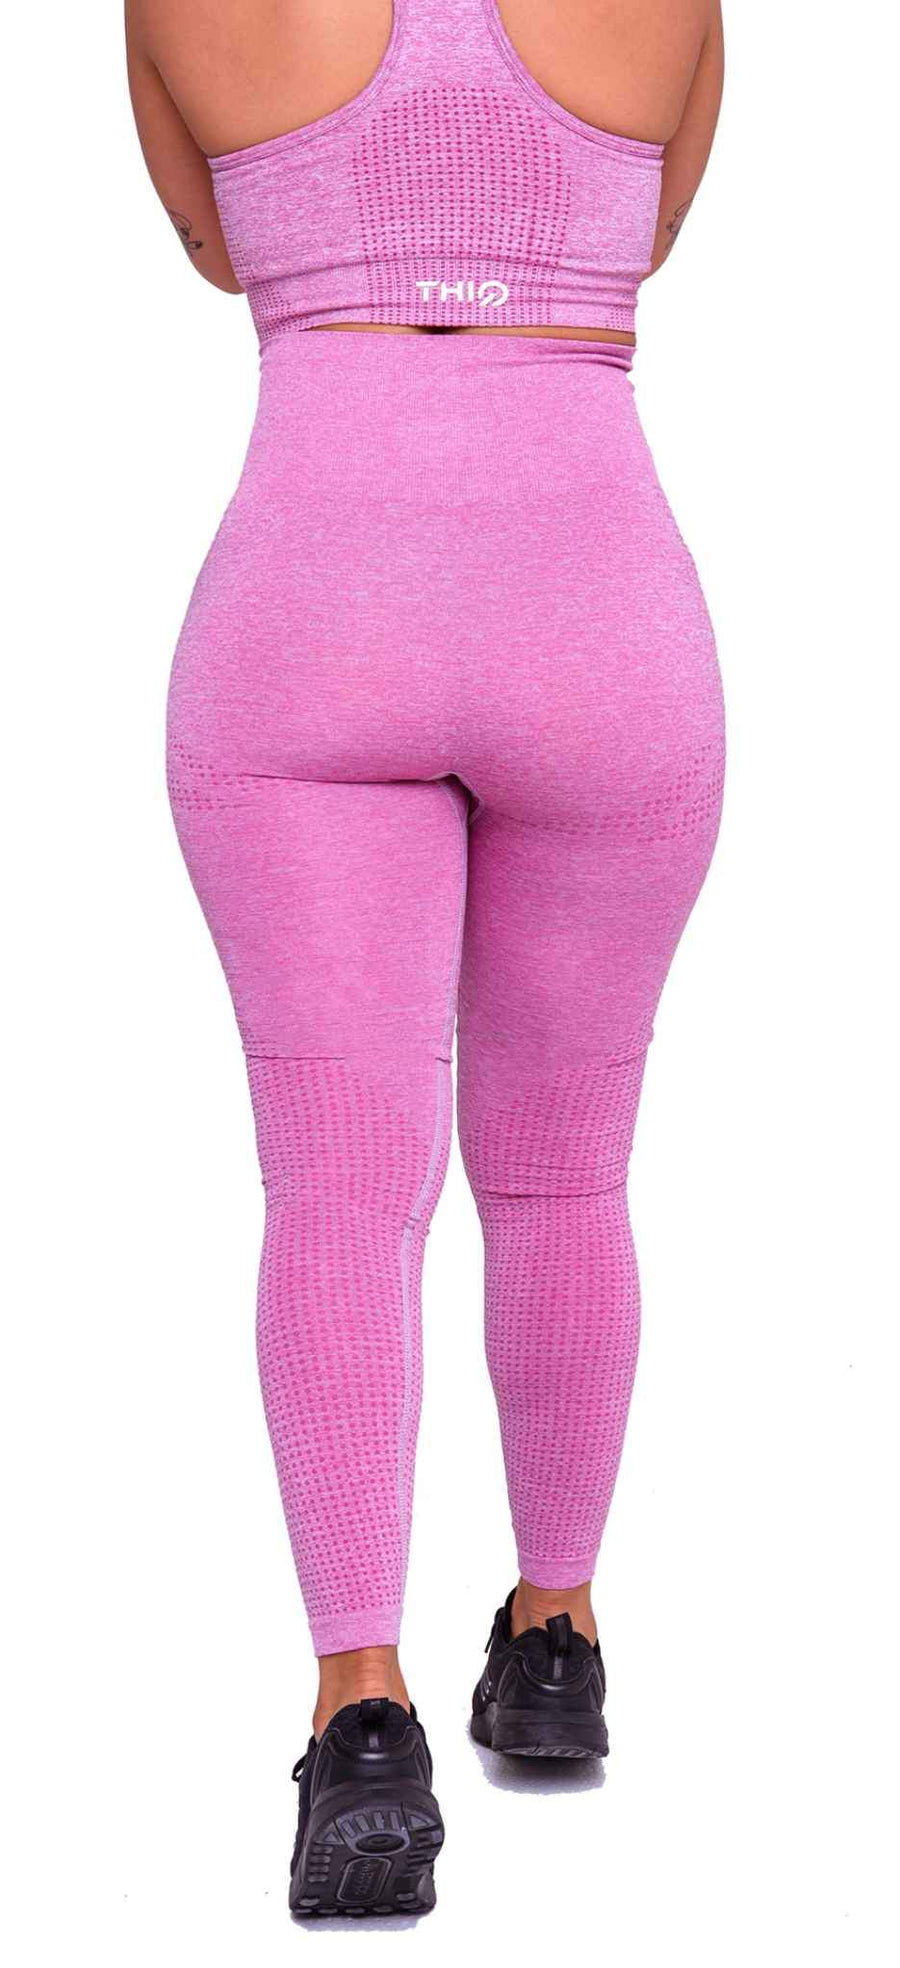 Activewear - Americano Seamless Leggings - Pink - THIQ